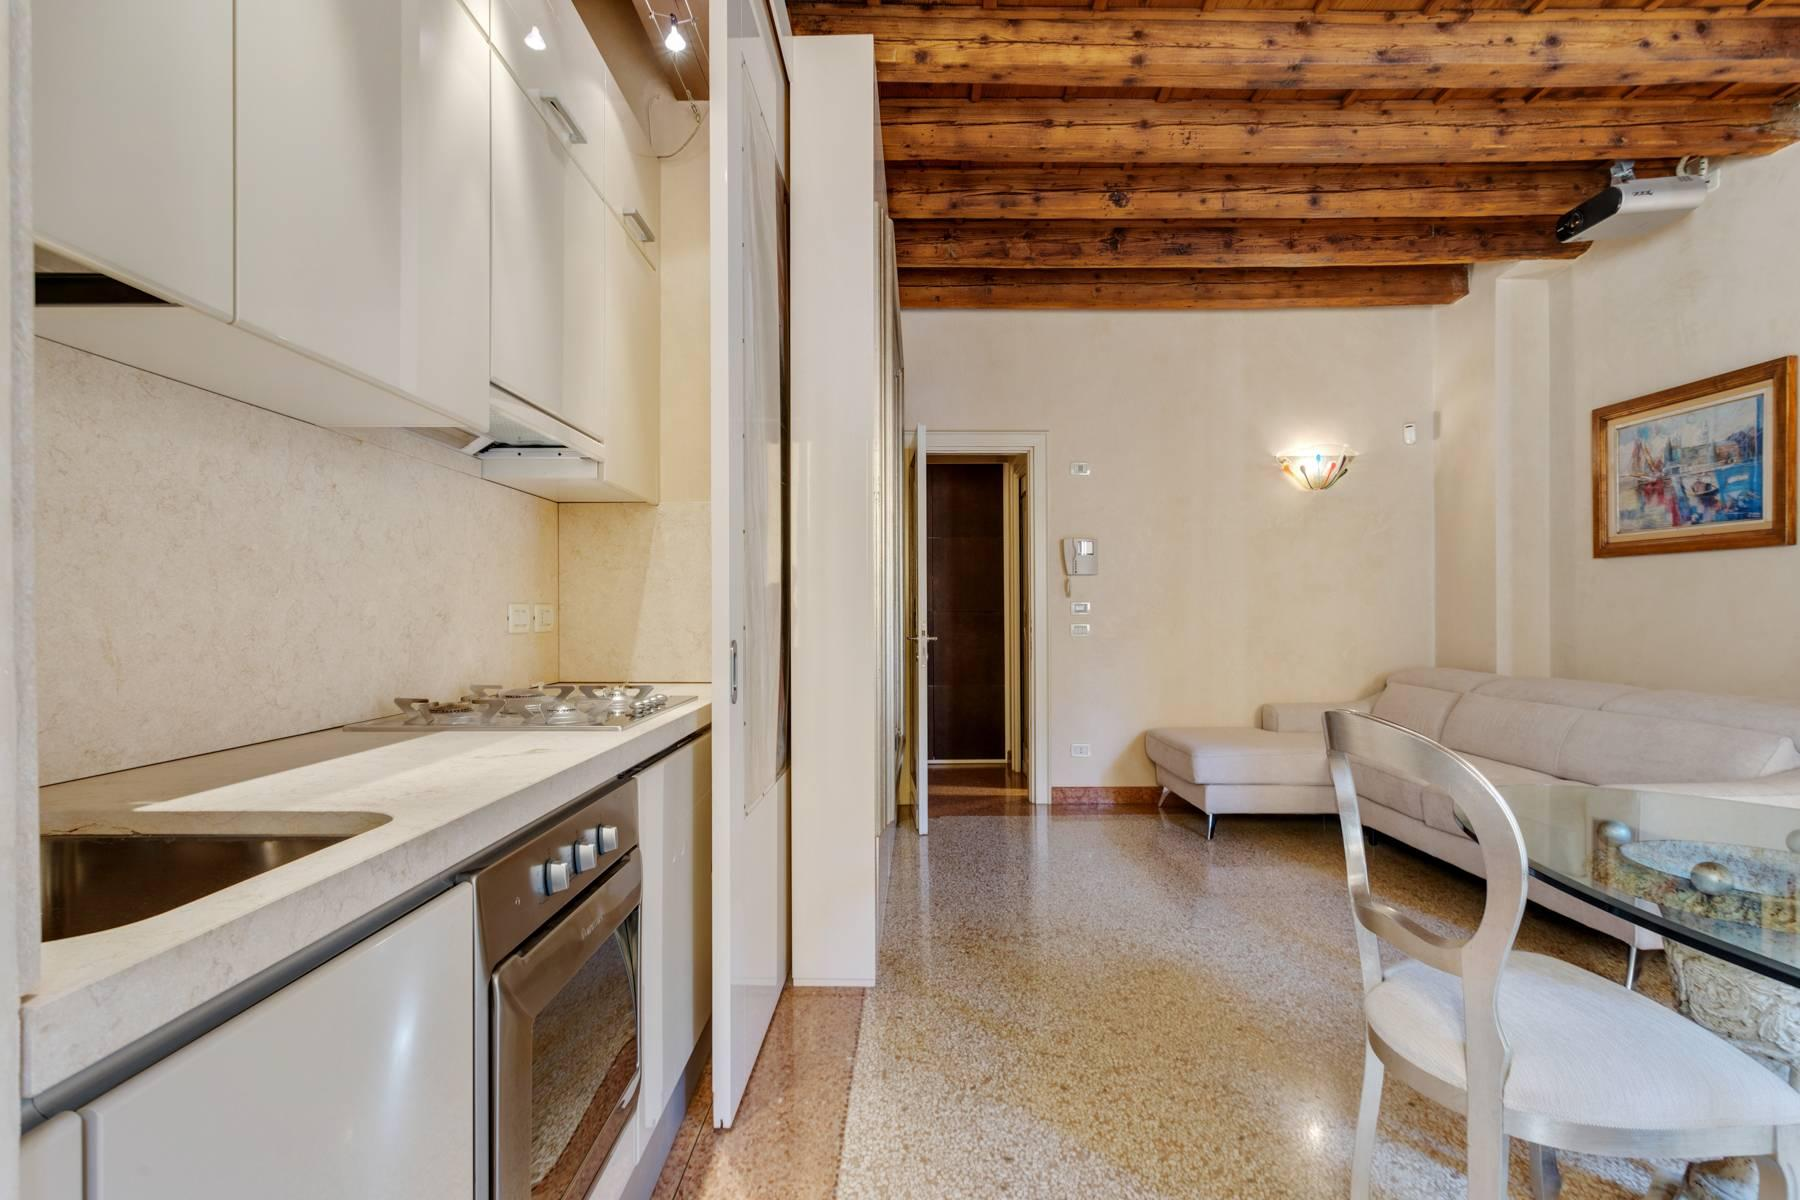 Exquisite apartment just few steps away from Piazza delle Erbe - 7